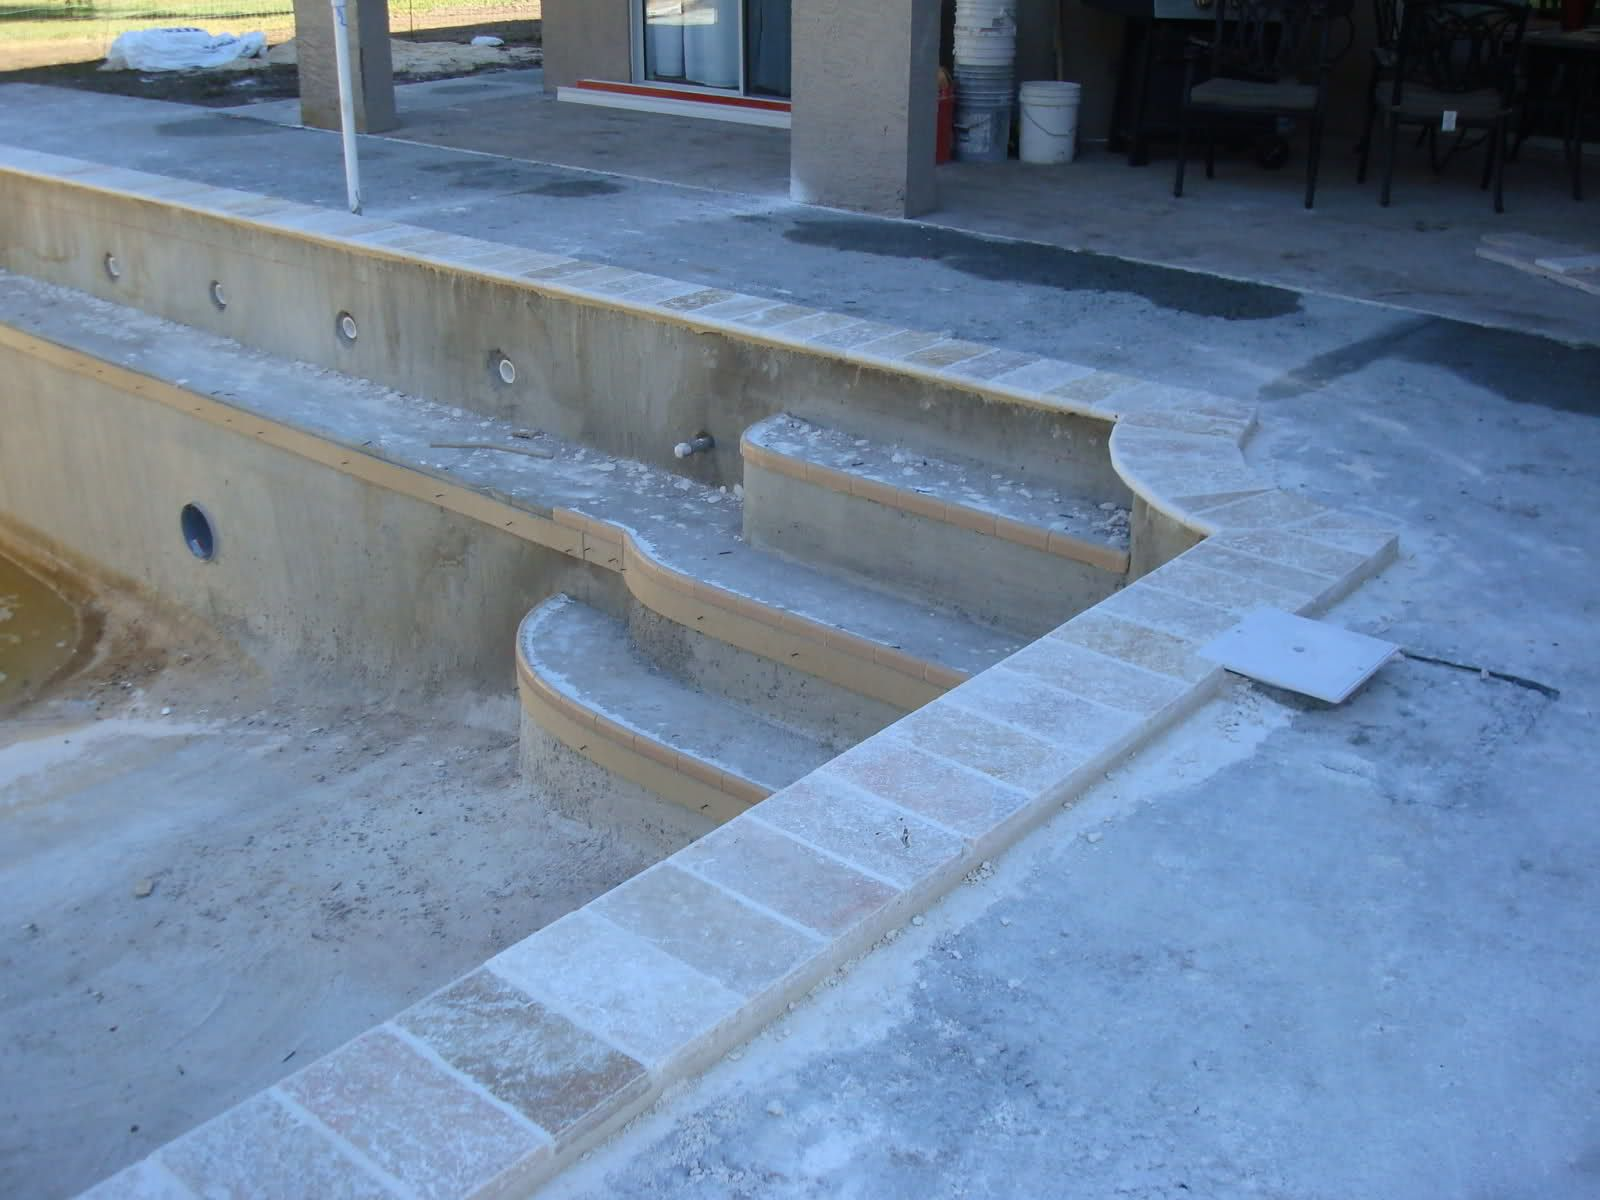 Silver Travertine Pool coping with blue glass mosaics | One day ...